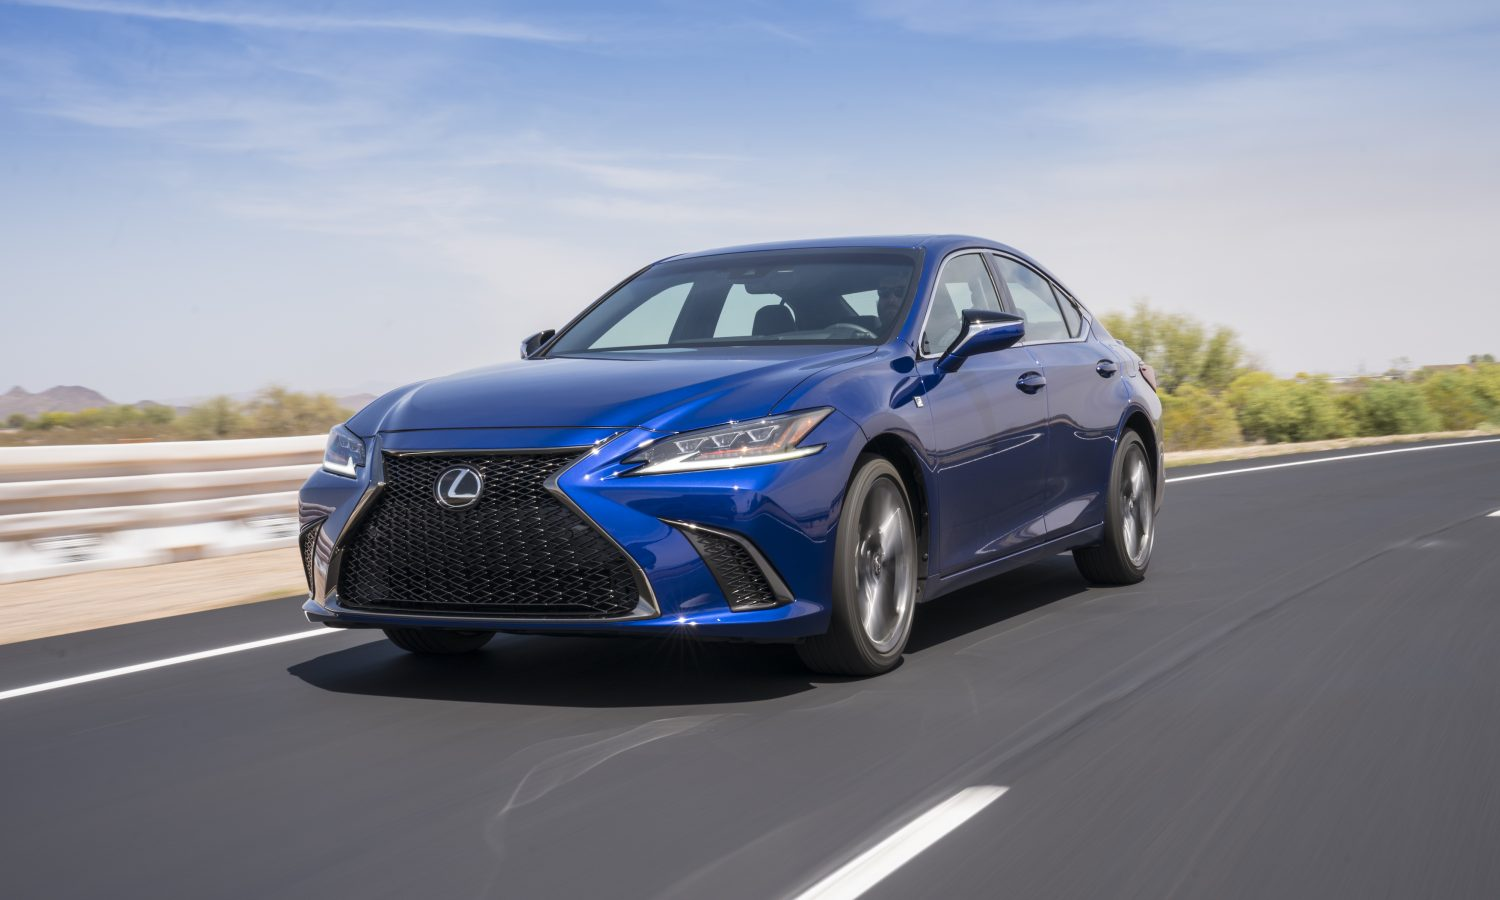 2020 ES Builds Upon Seventh-Generation Redesign